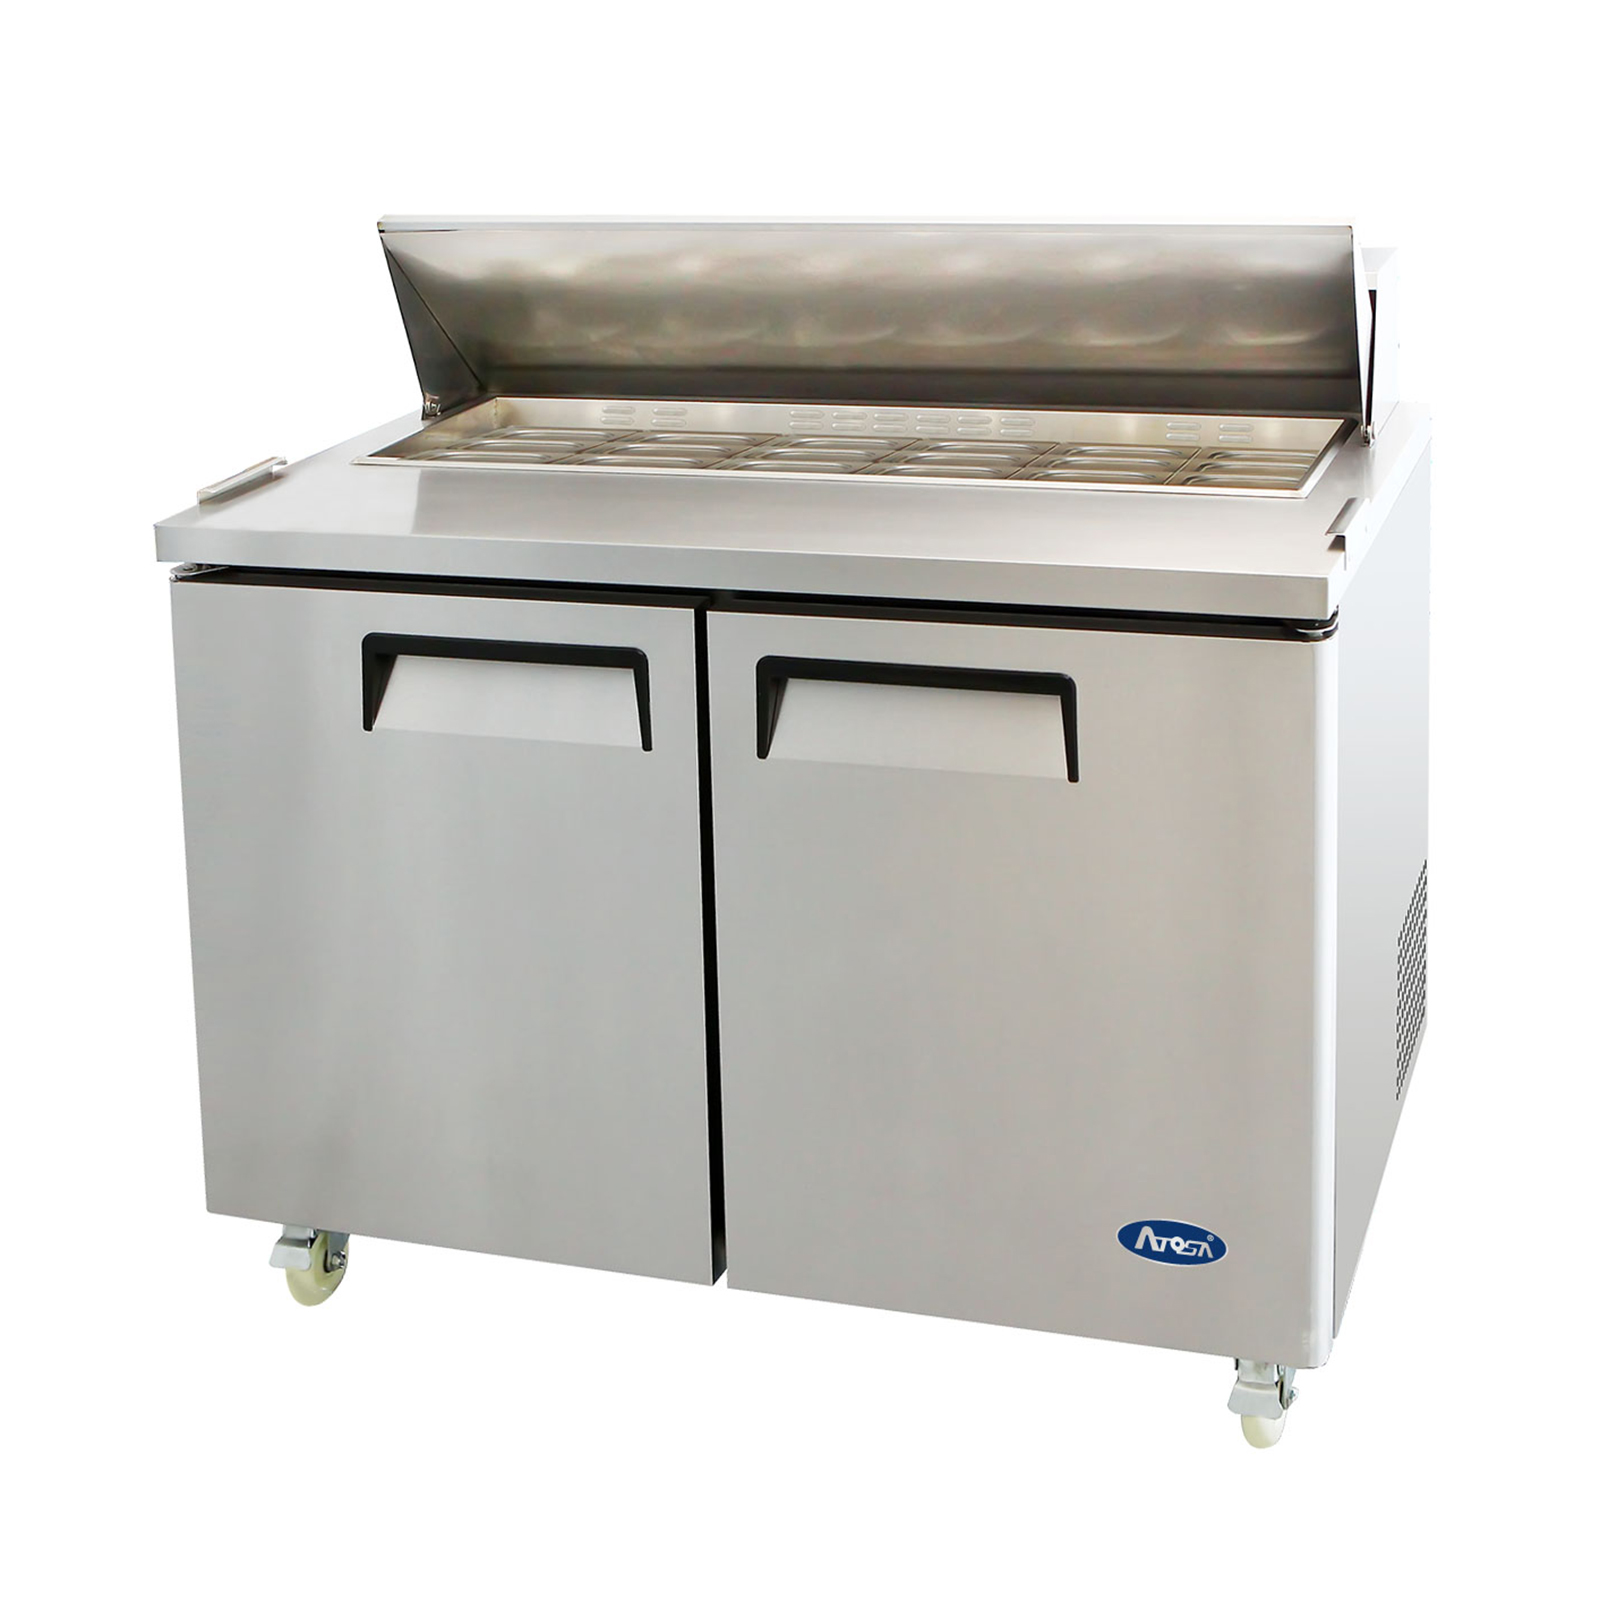 Atosa USA MSF8306GR refrigerated counter, mega top sandwich / salad unit